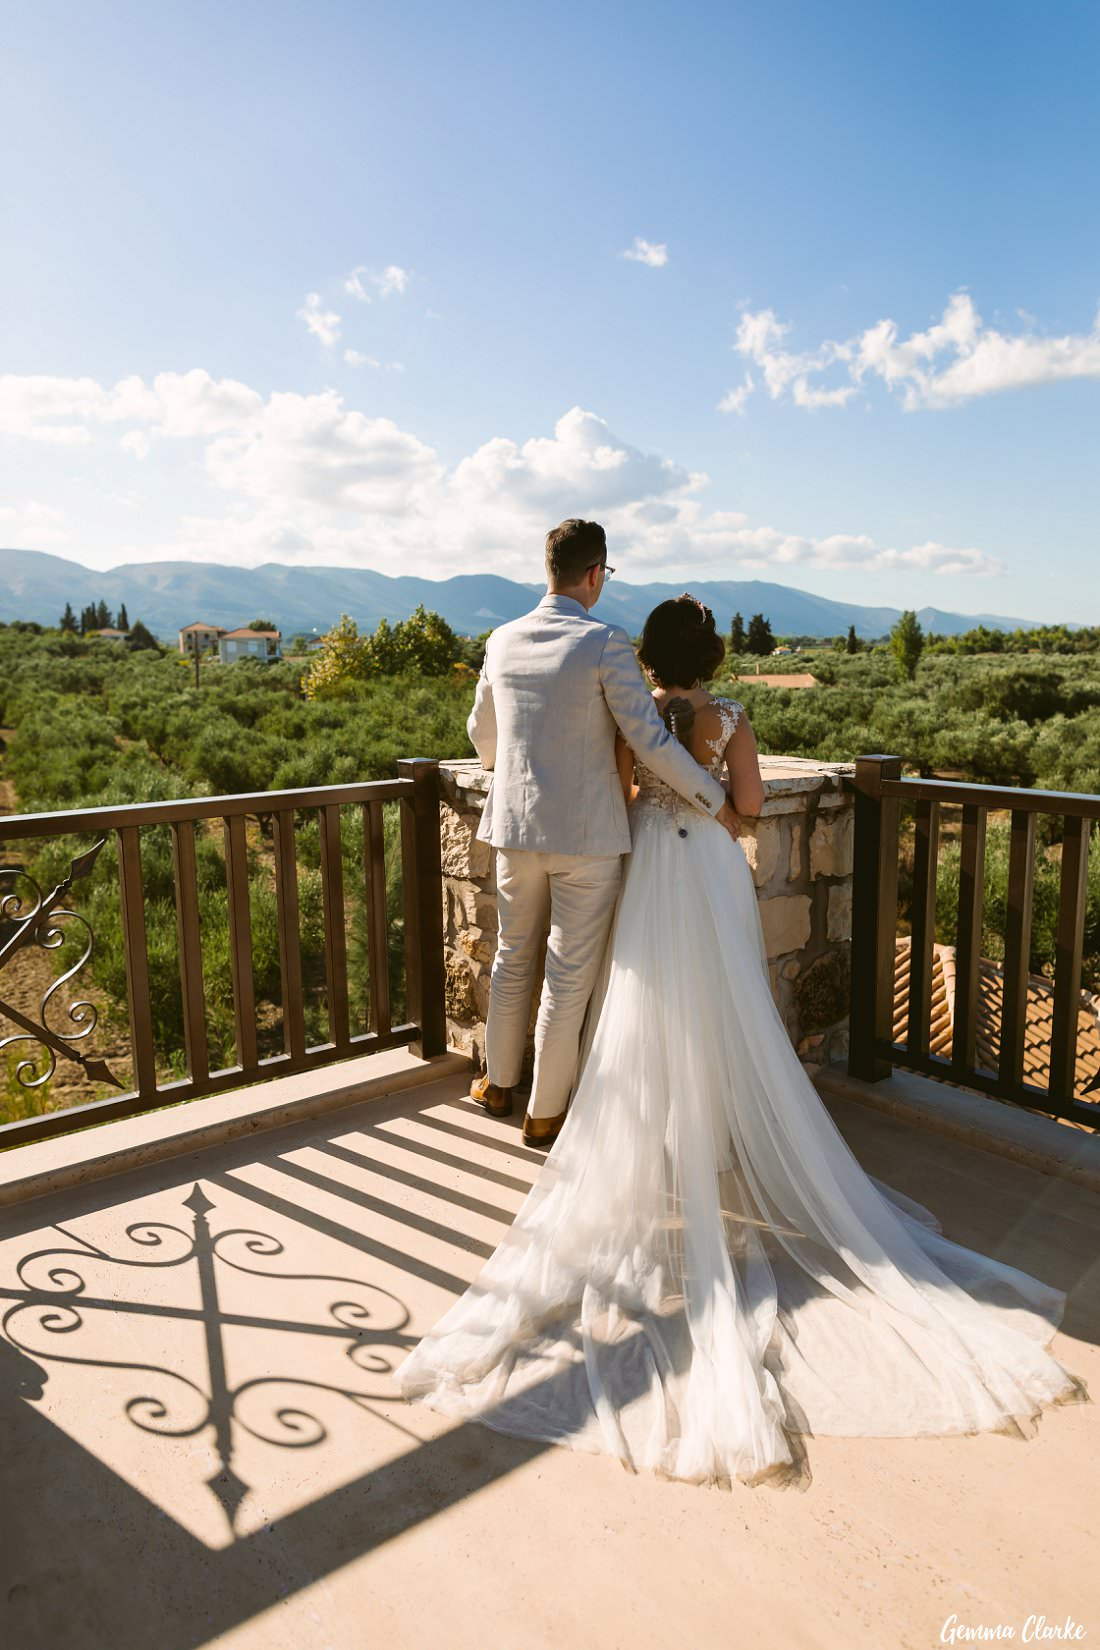 Stunning view over the olive grove with bride and groom at their Greek Villa Wedding